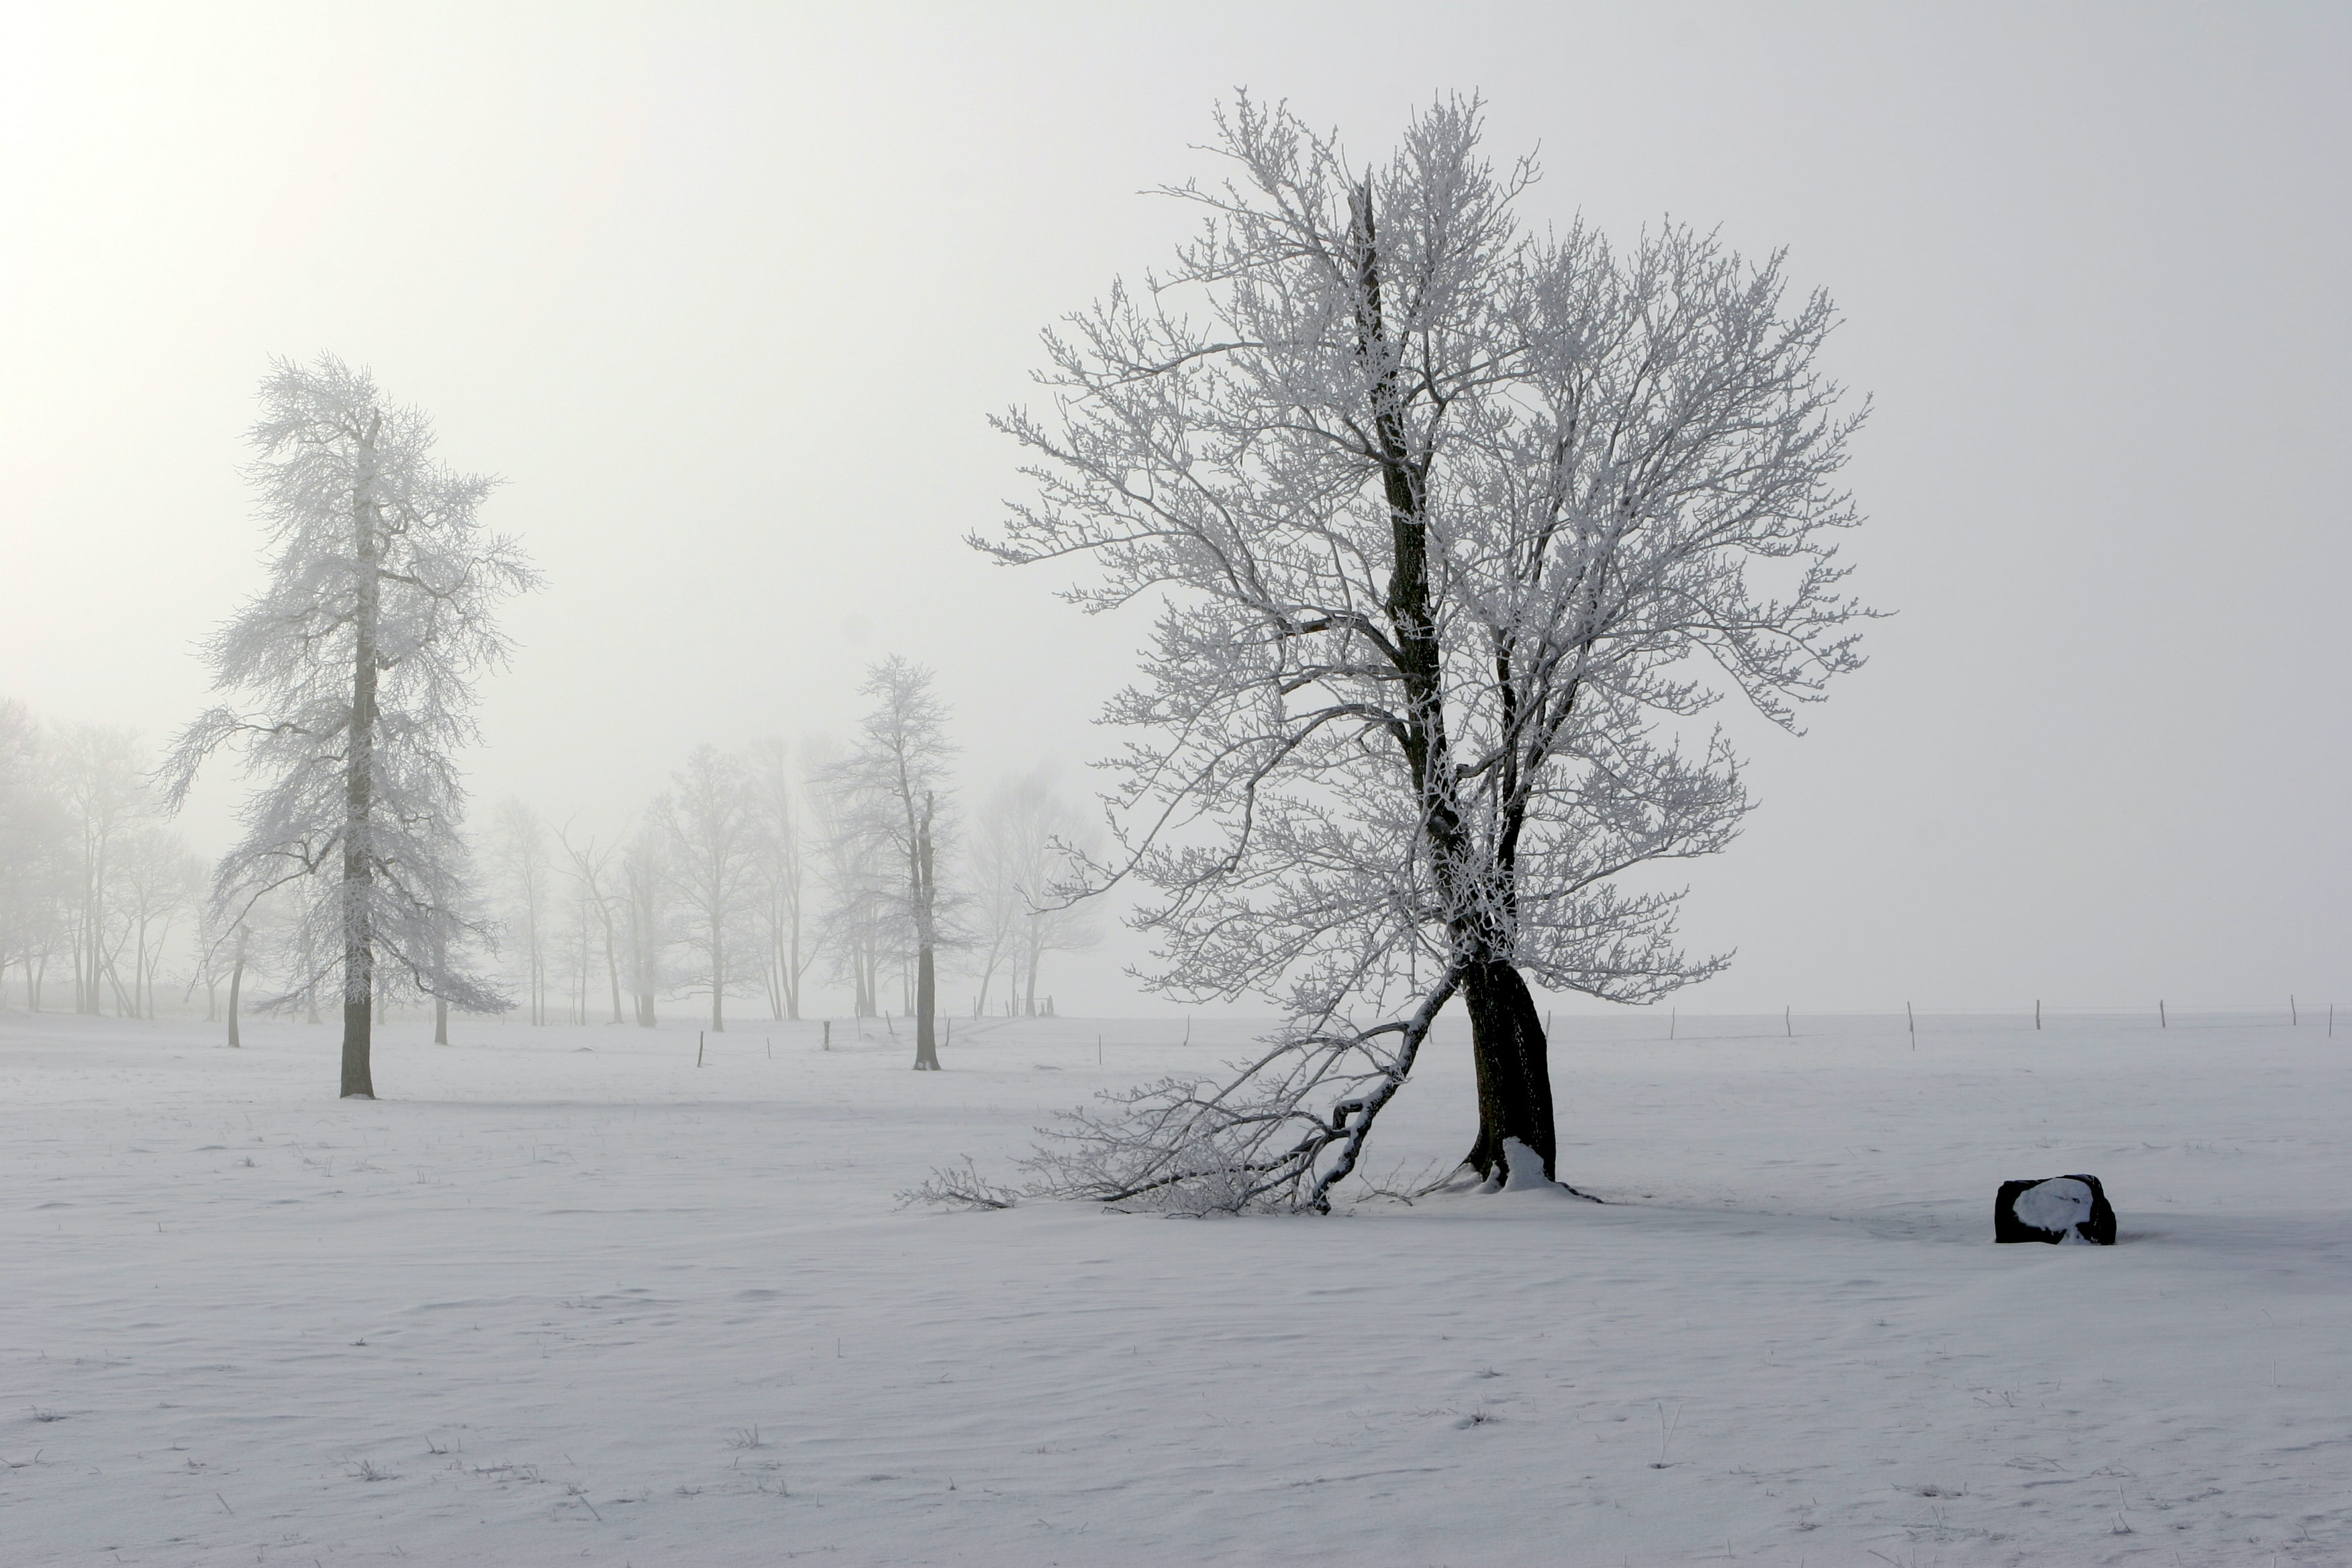 snow cover tree during gray cloudy sky